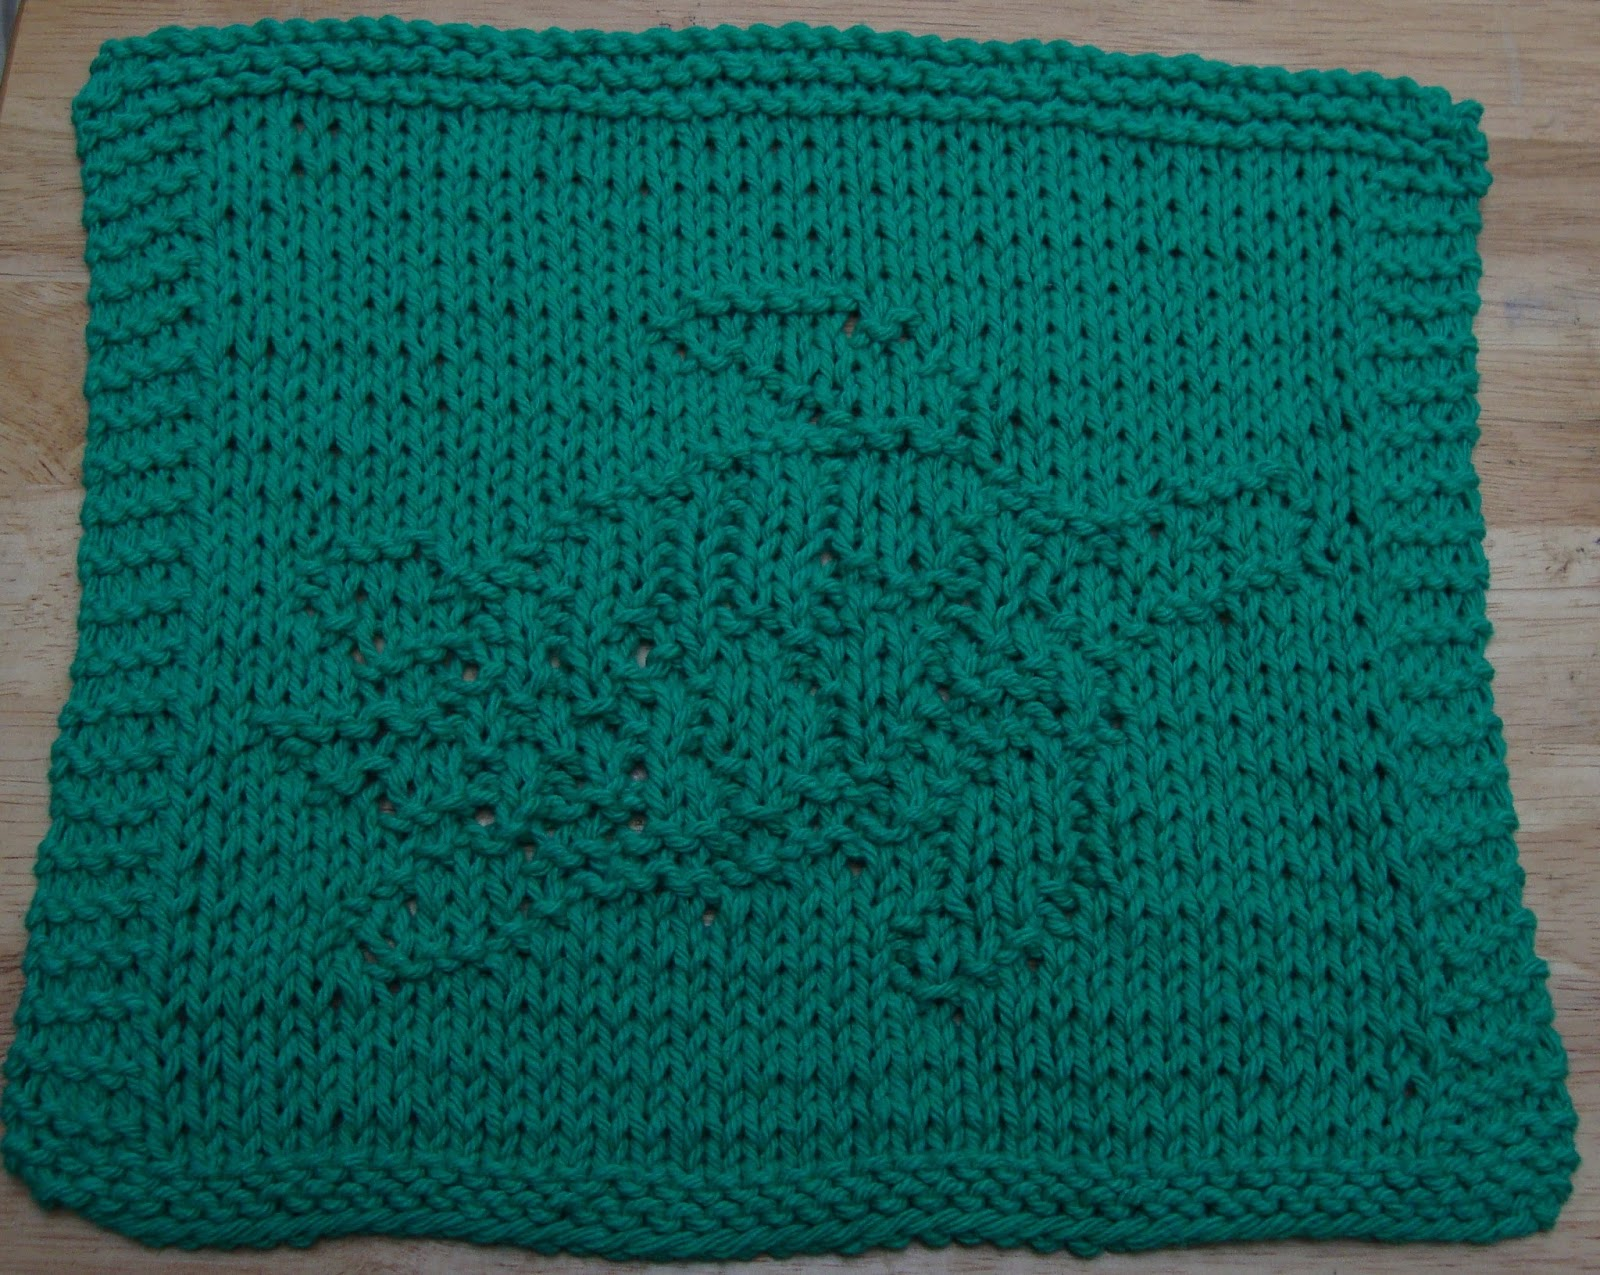 Tortoise Clothes Knitting Pattern : Digknitty designs sea turtle knit dishcloth pattern